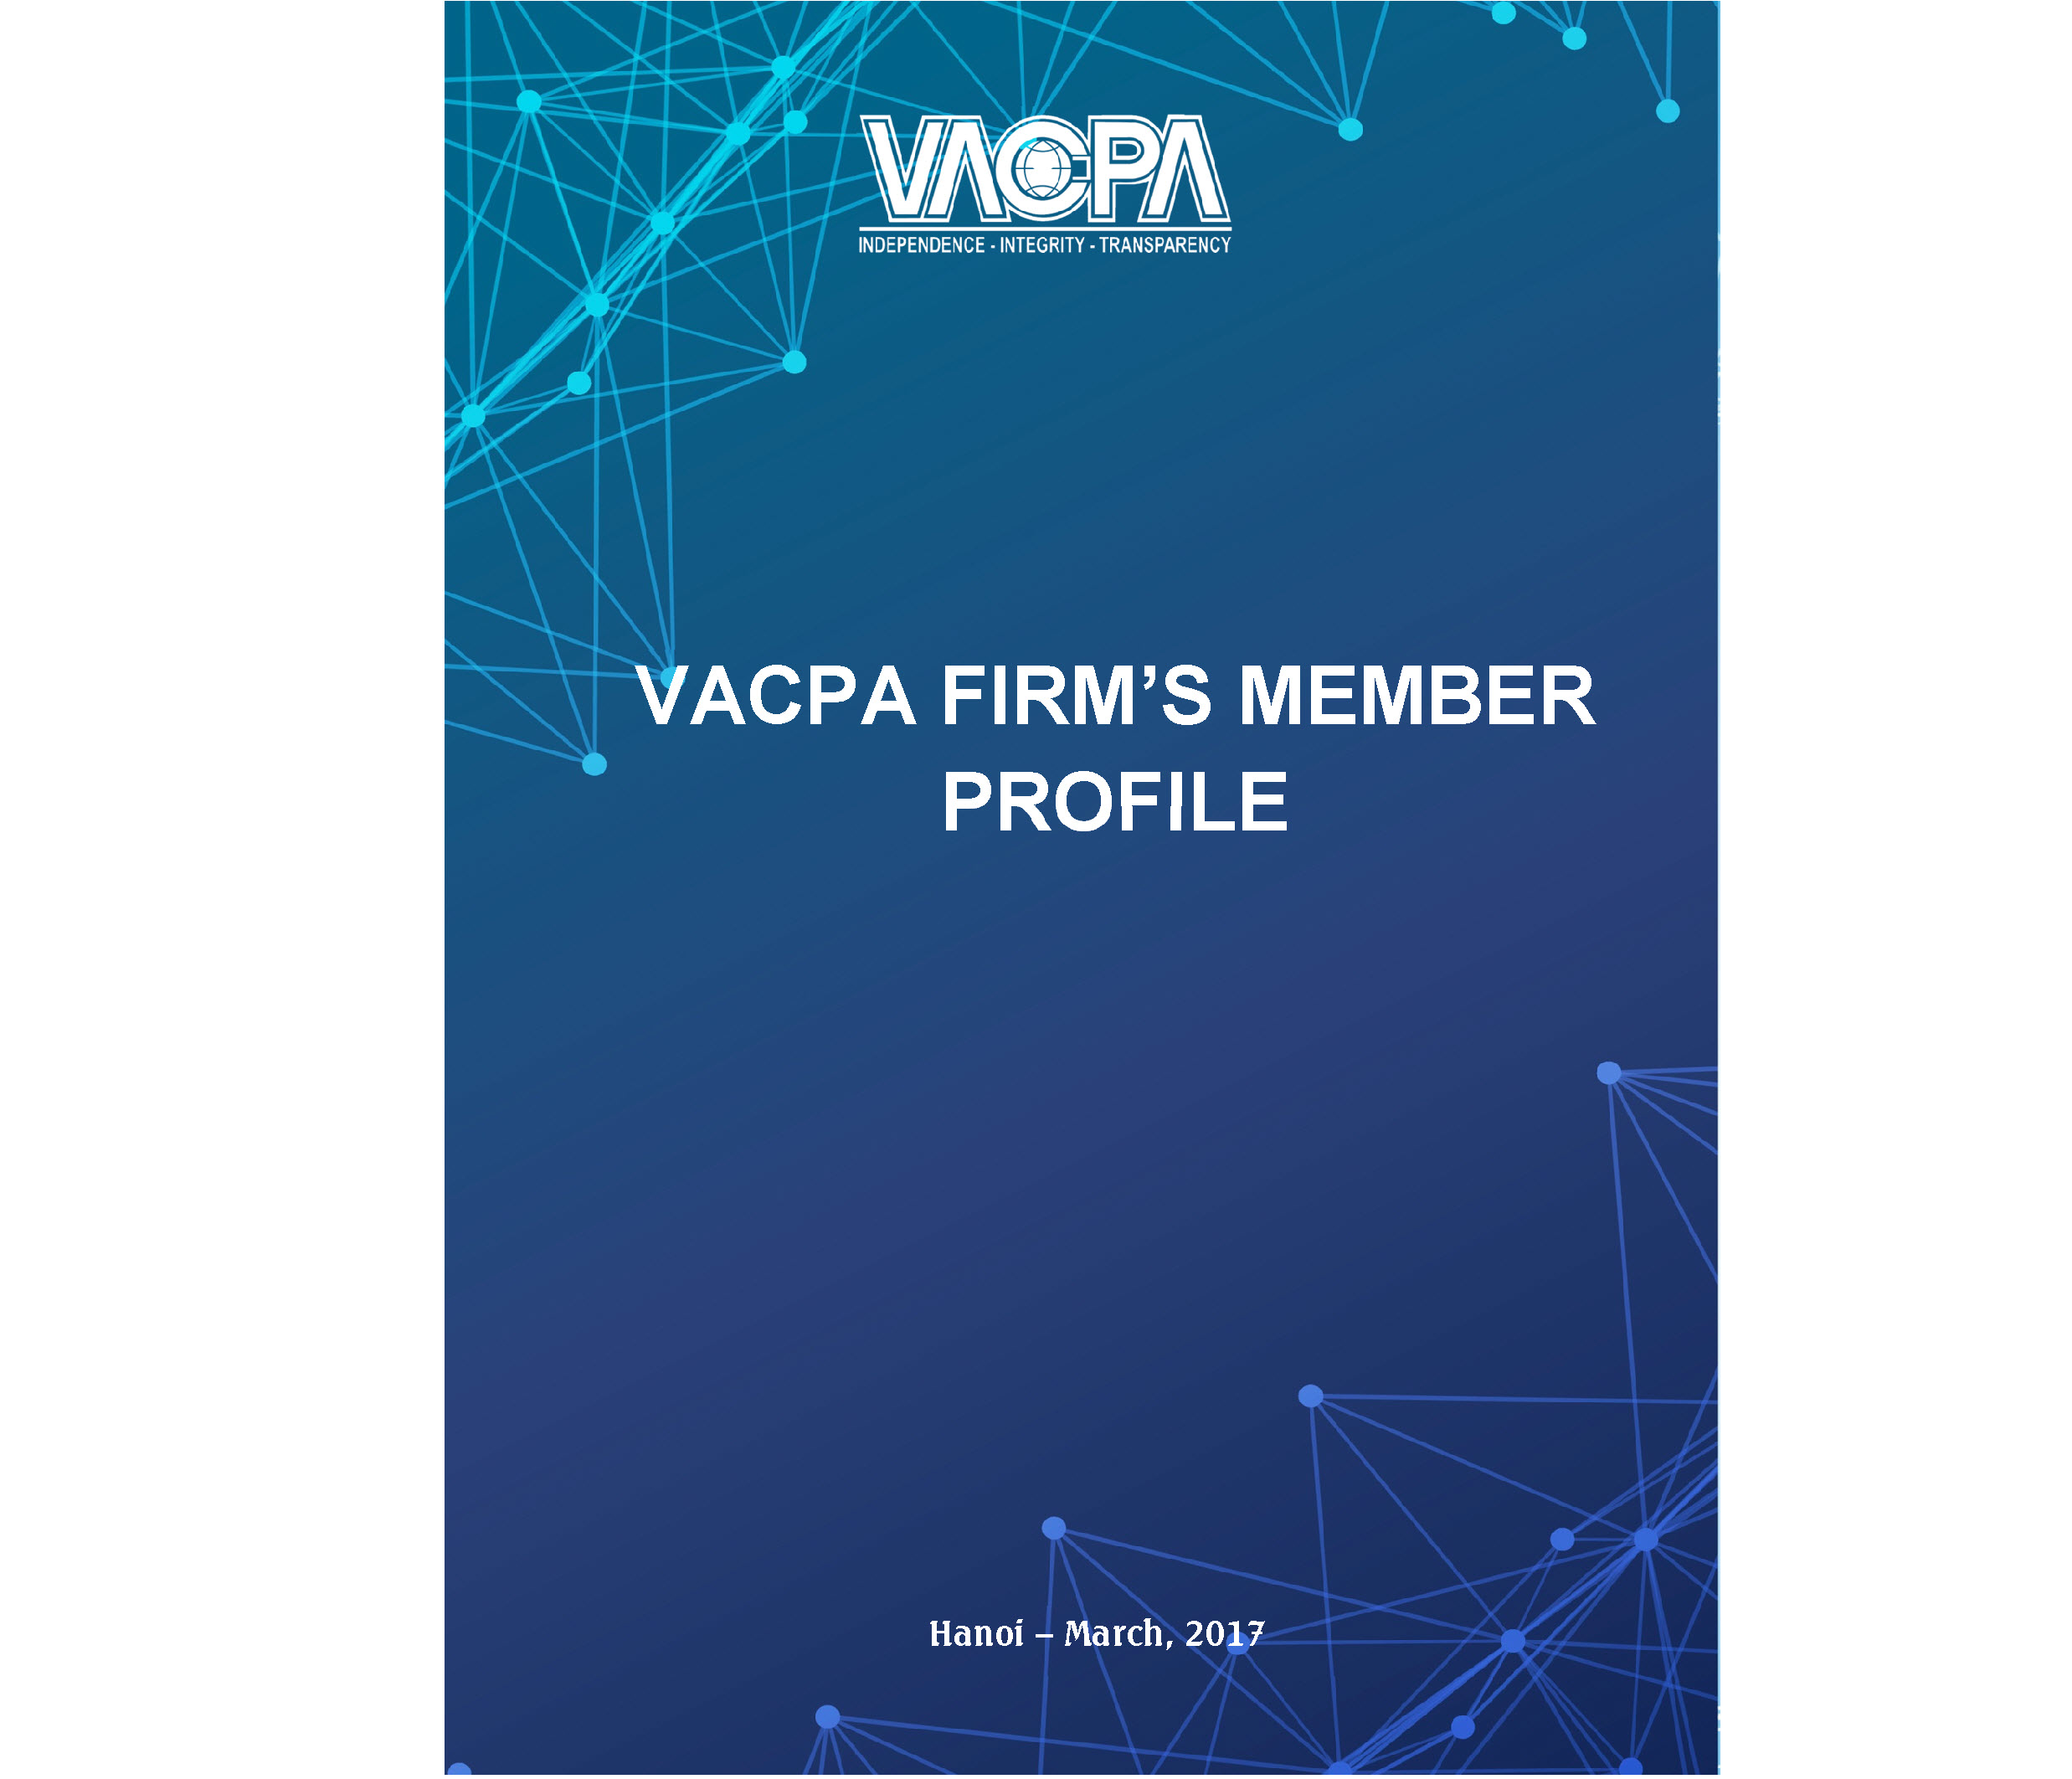 trang tin i n t hi p h i ki m to aacute n vi ecirc n h agrave nh ngh vi t nam vietnam association of certified public accountans vacpa is a independent professional organization of certified public accountans and audit firms in